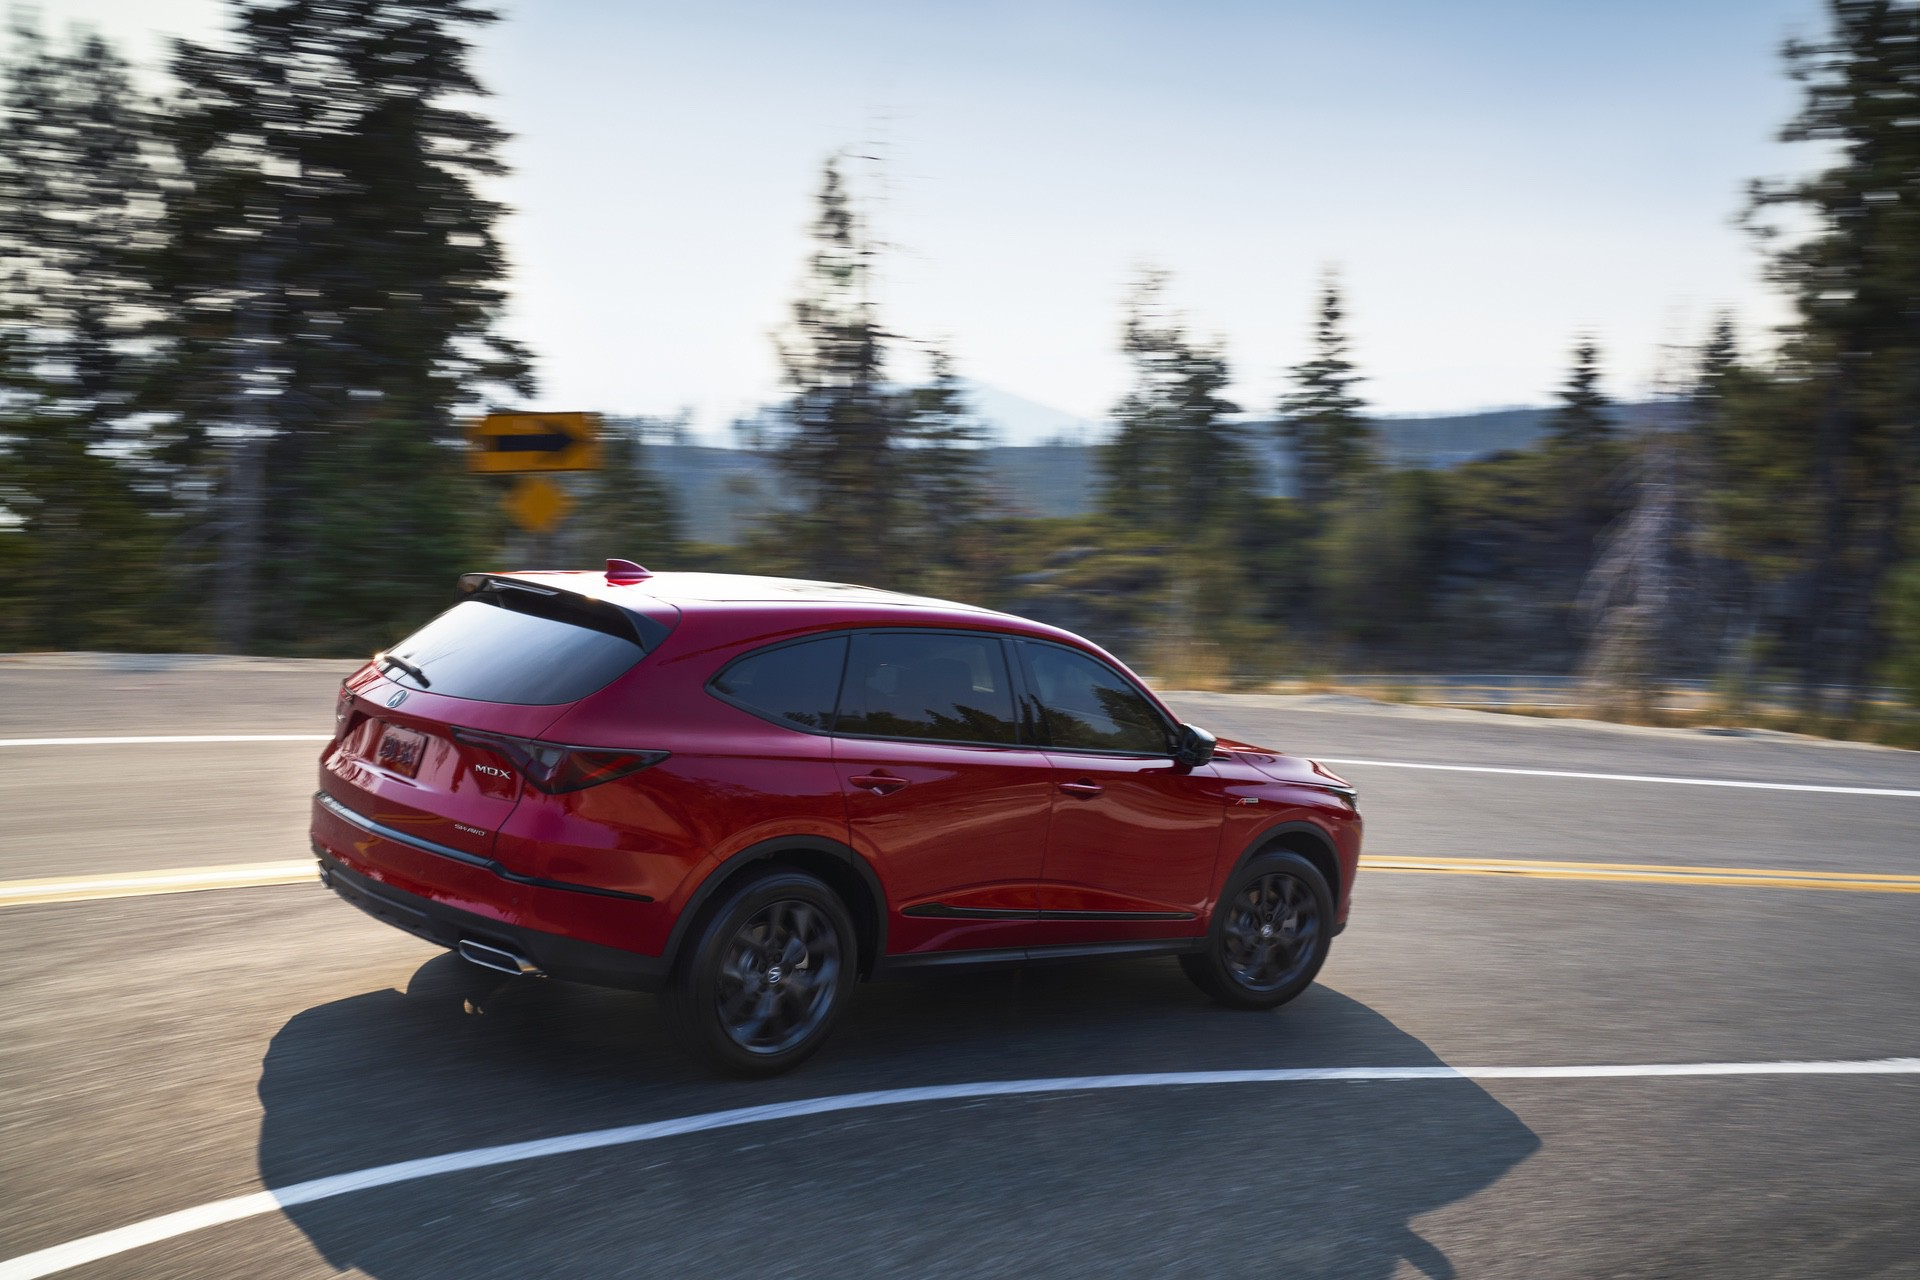 2022 MDX SH-AWD A-Spec Performance Red Pearl 3/4 Front Driver Exterior running back road